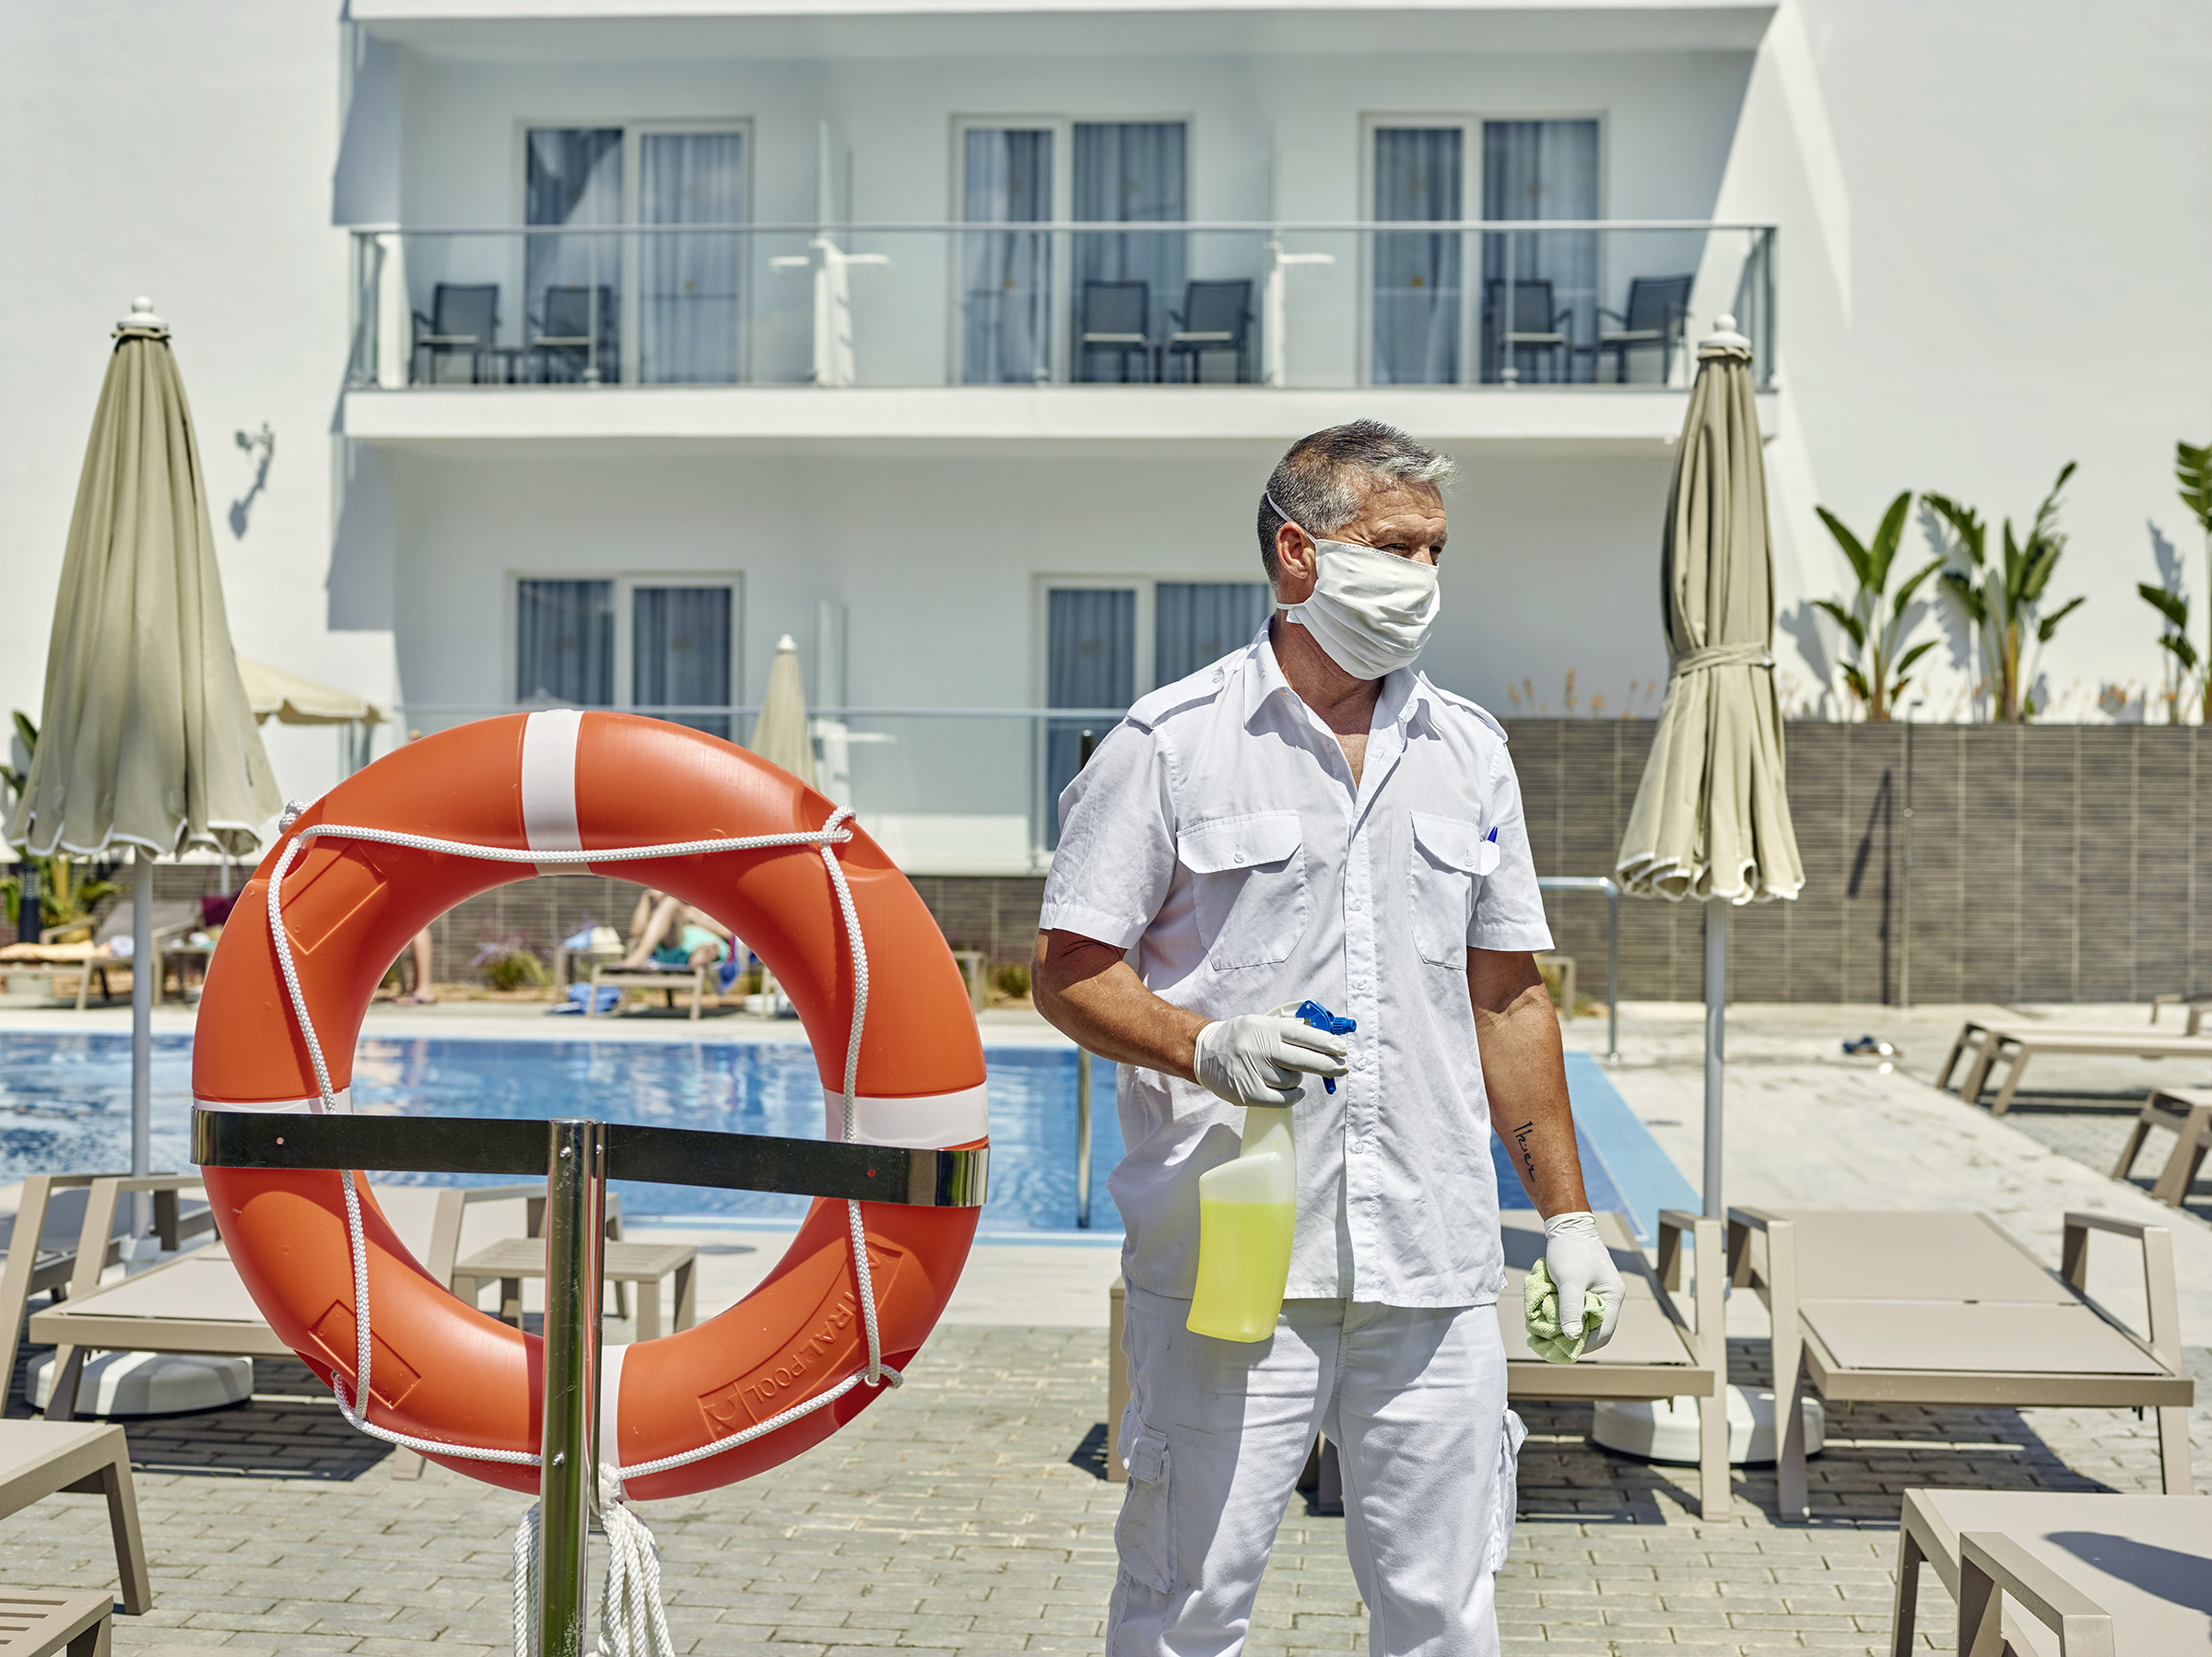 Disinfecting the pool area at the newly reopened Riu Concordia Hotel in Mallorca's Platja de Palma.